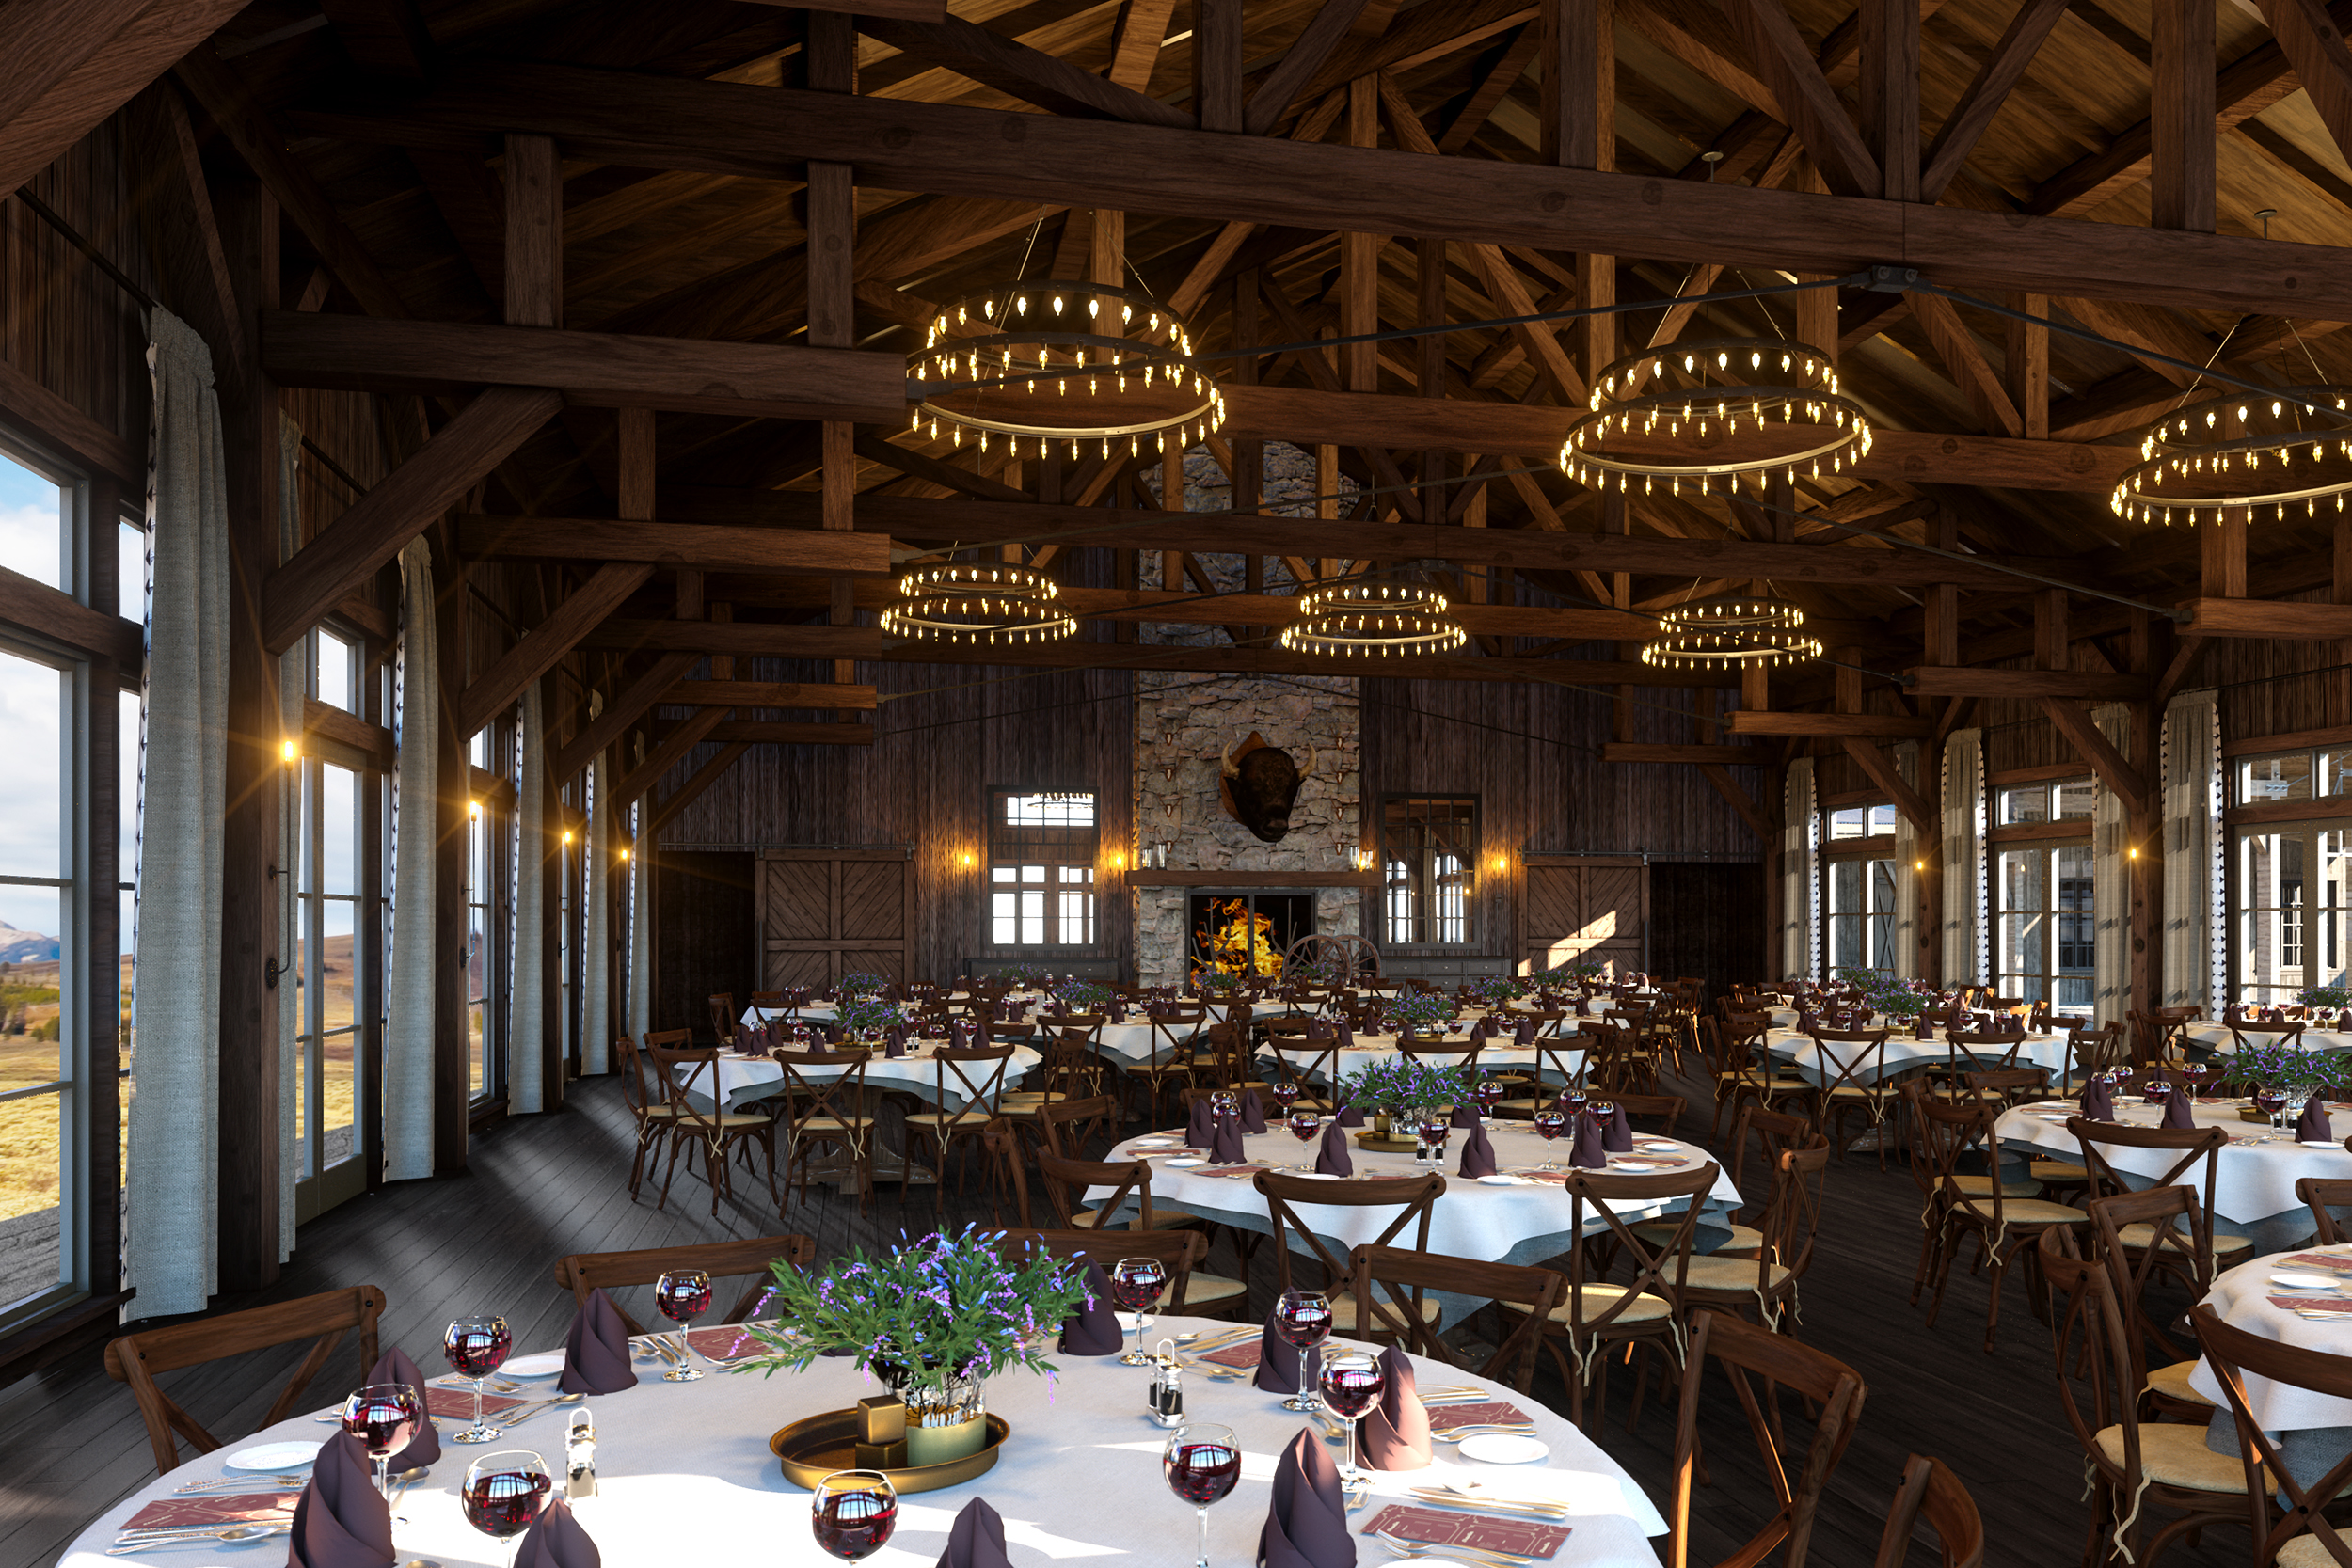 The astonishing interior of the Saddle Barn space at Brush Creek Ranch